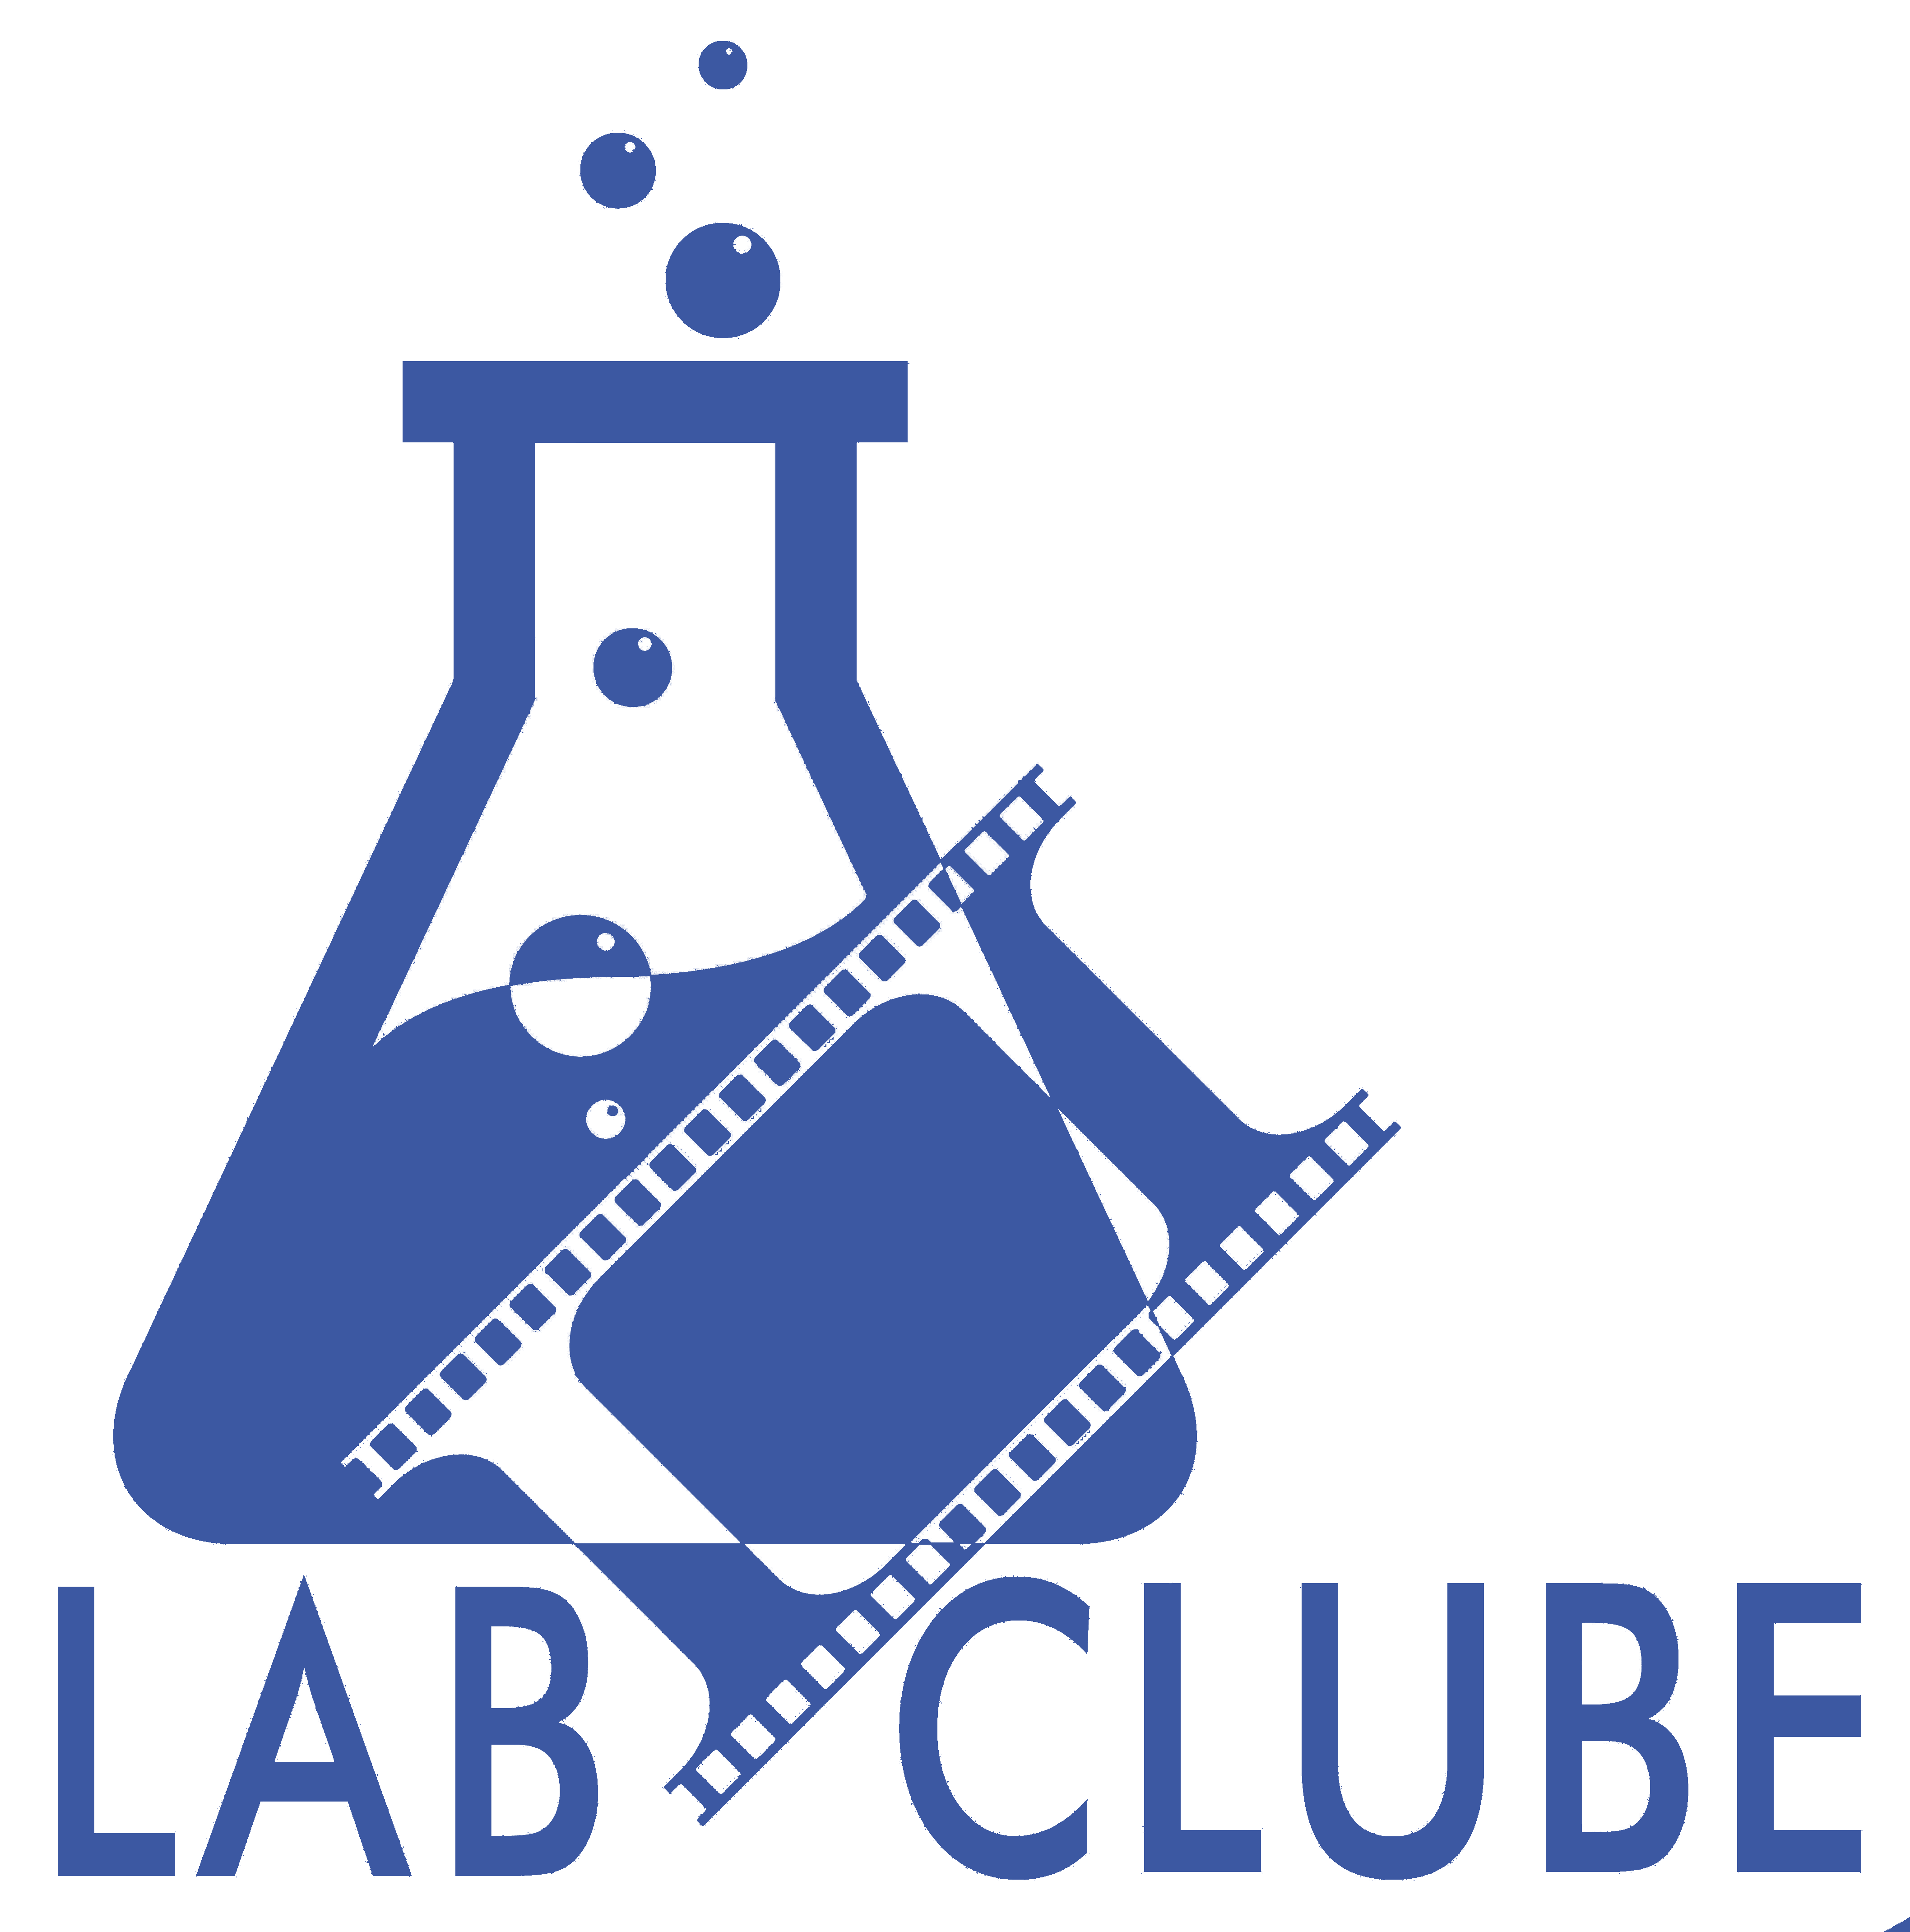 LAB CLUBE